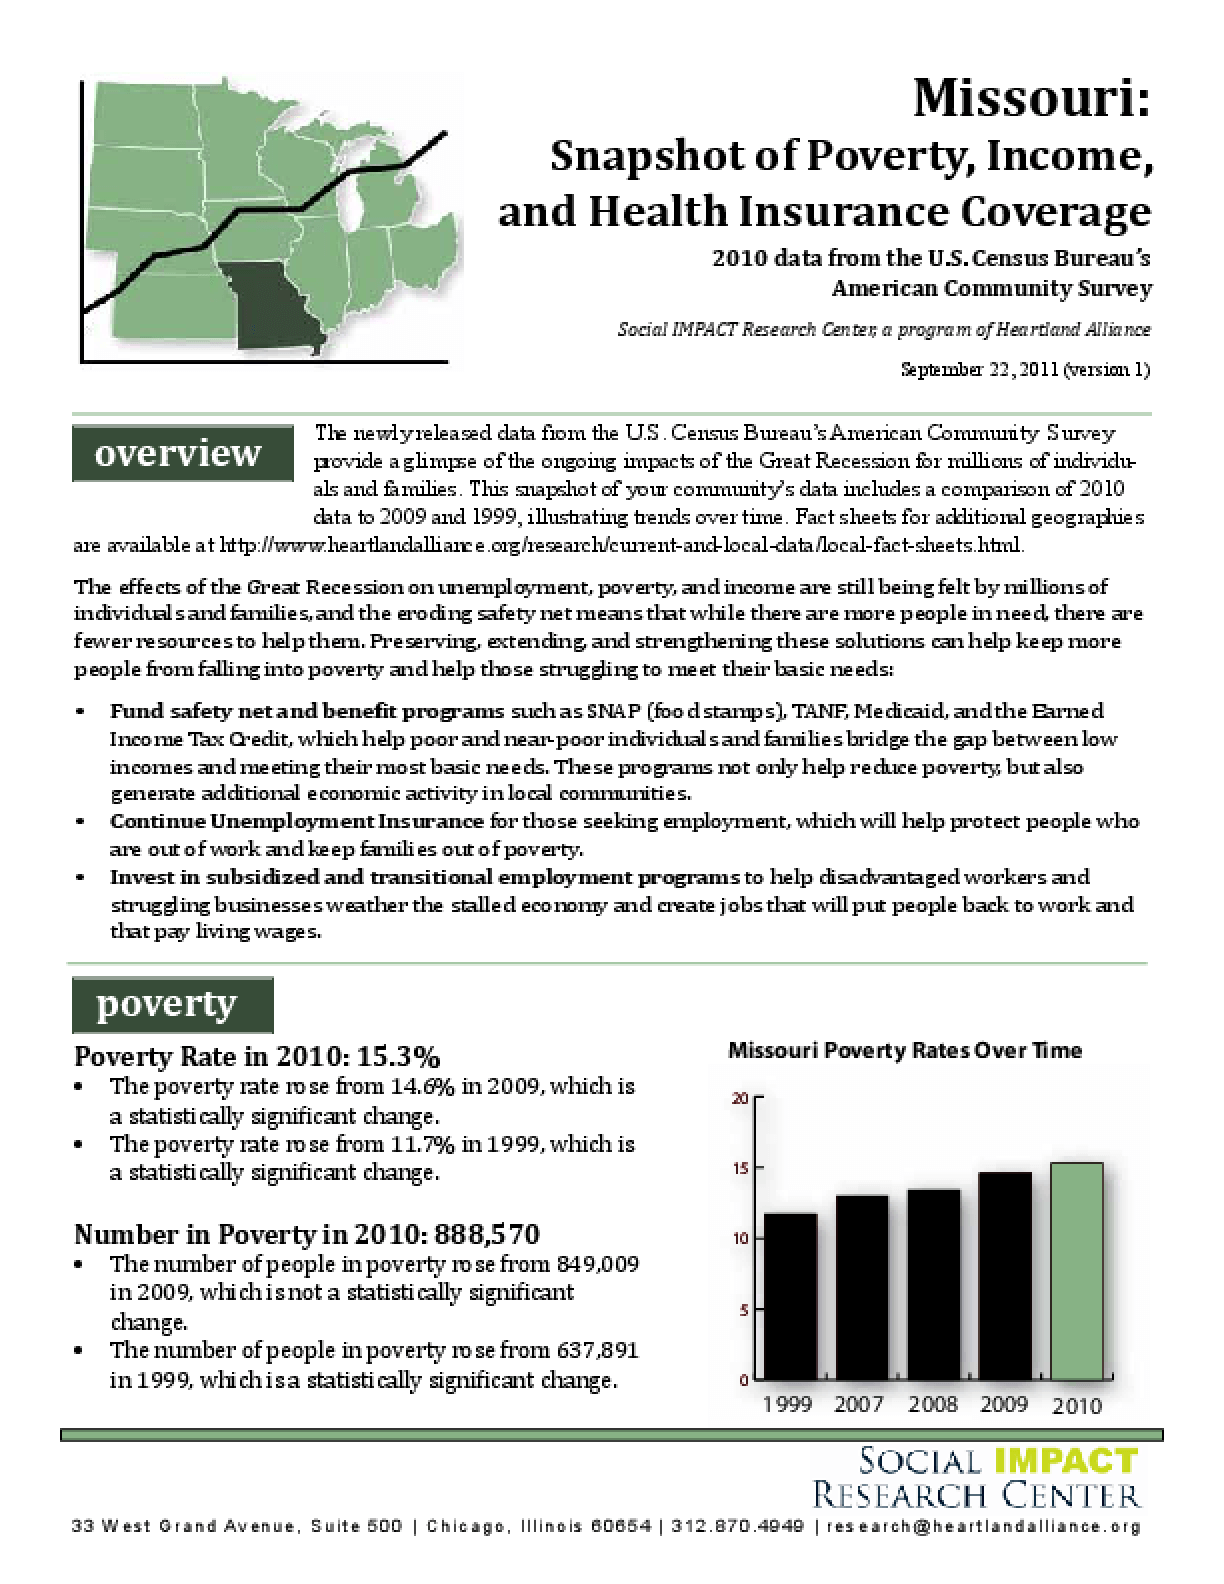 Missouri: Snapshot of Poverty, Income, and Health Insurance Coverage